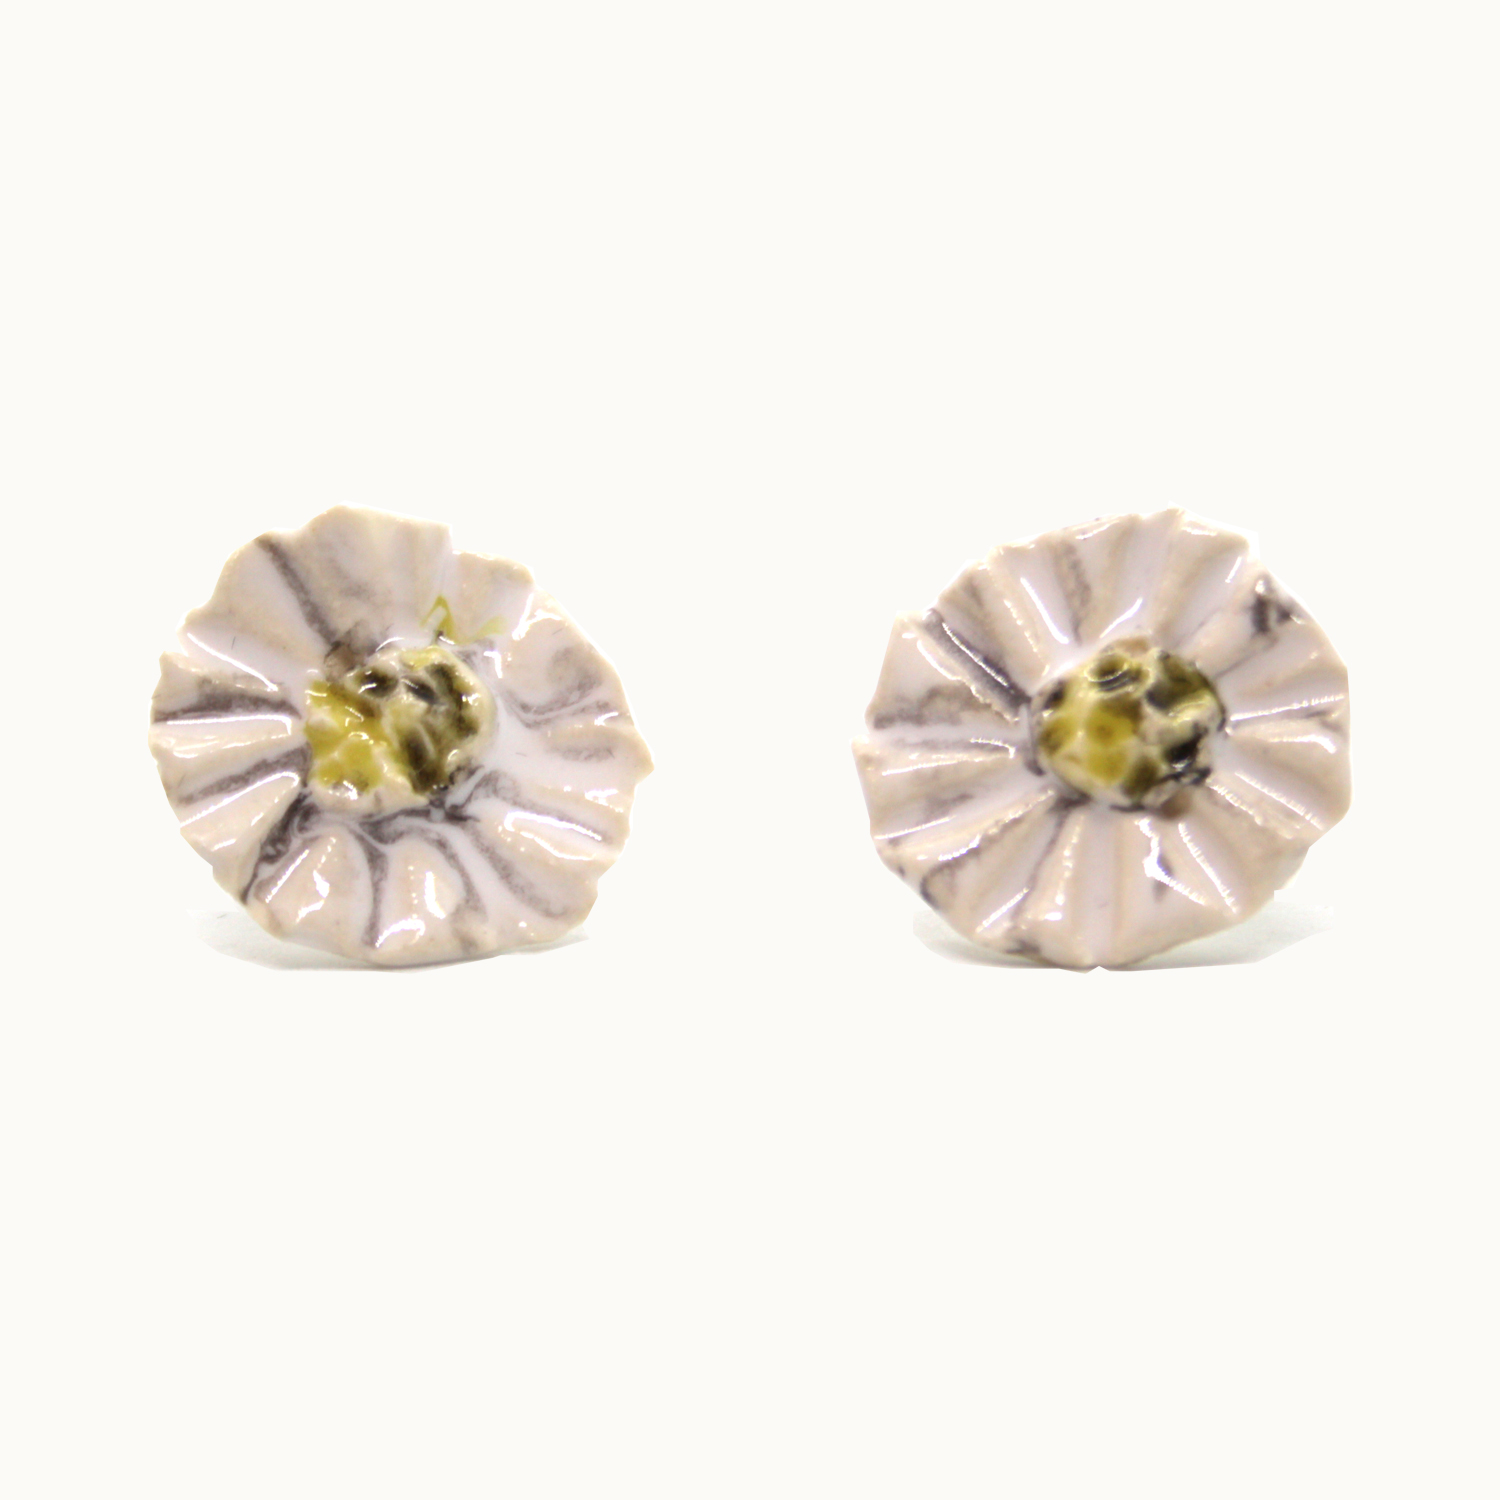 Pendientes originales Bowtery de cerámica y plata con flor blanca margarita hechos a mano. Handmade ceramic and silver earrings white daisy flower